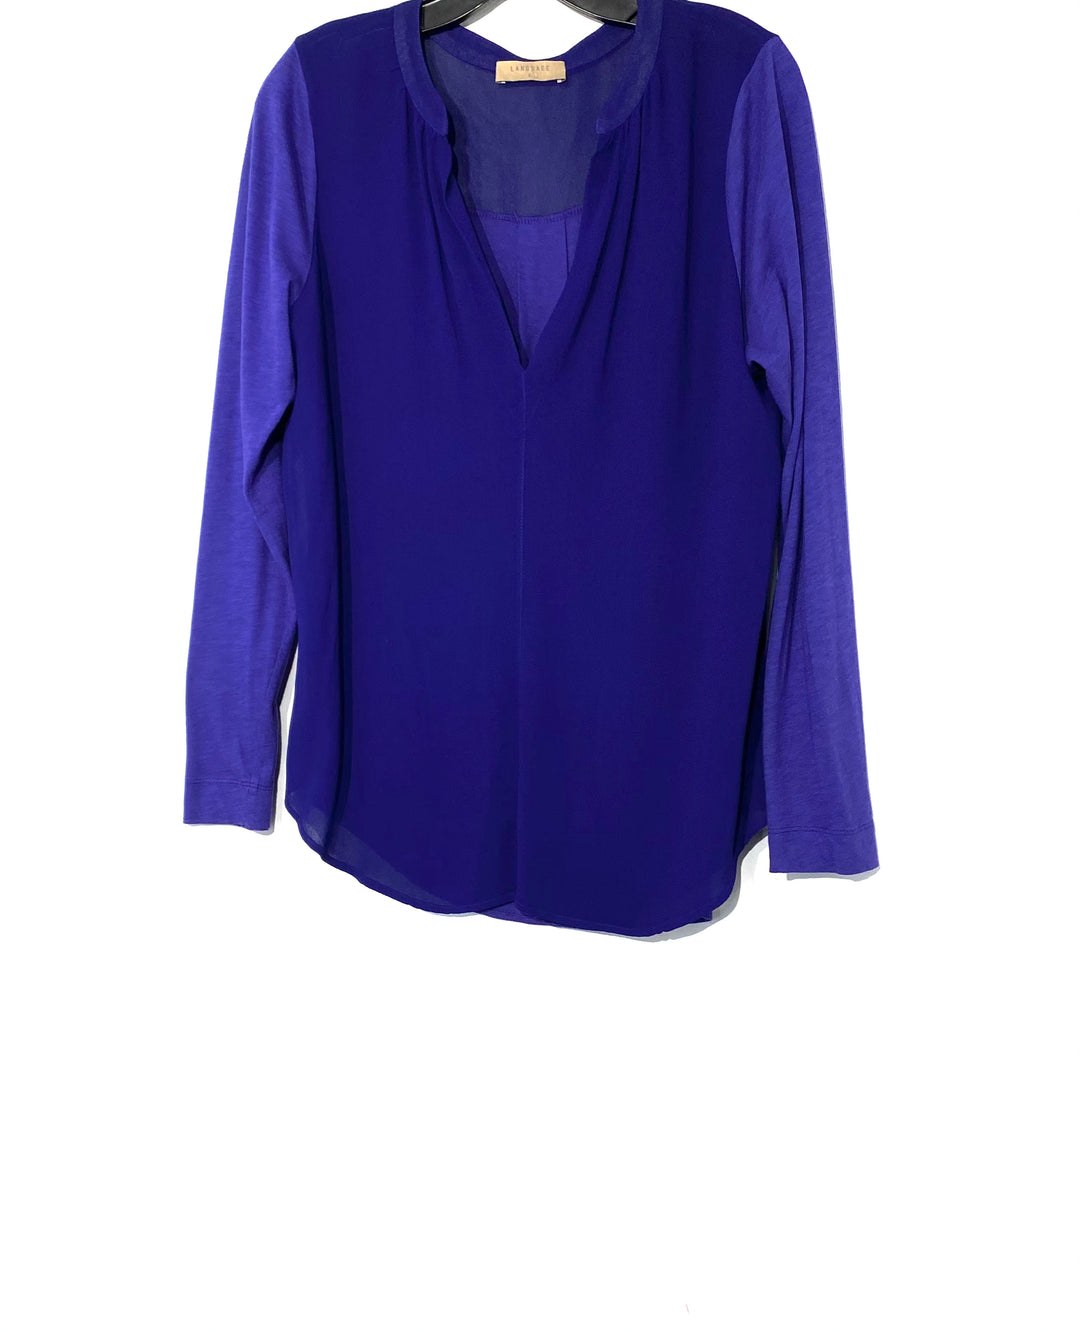 Primary Photo - BRAND: LANGUAGE <BR>STYLE: TOP LONG SLEEVE <BR>COLOR: DARK ROYAL BLUE <BR>SIZE: L <BR>SKU: 262-26275-69866